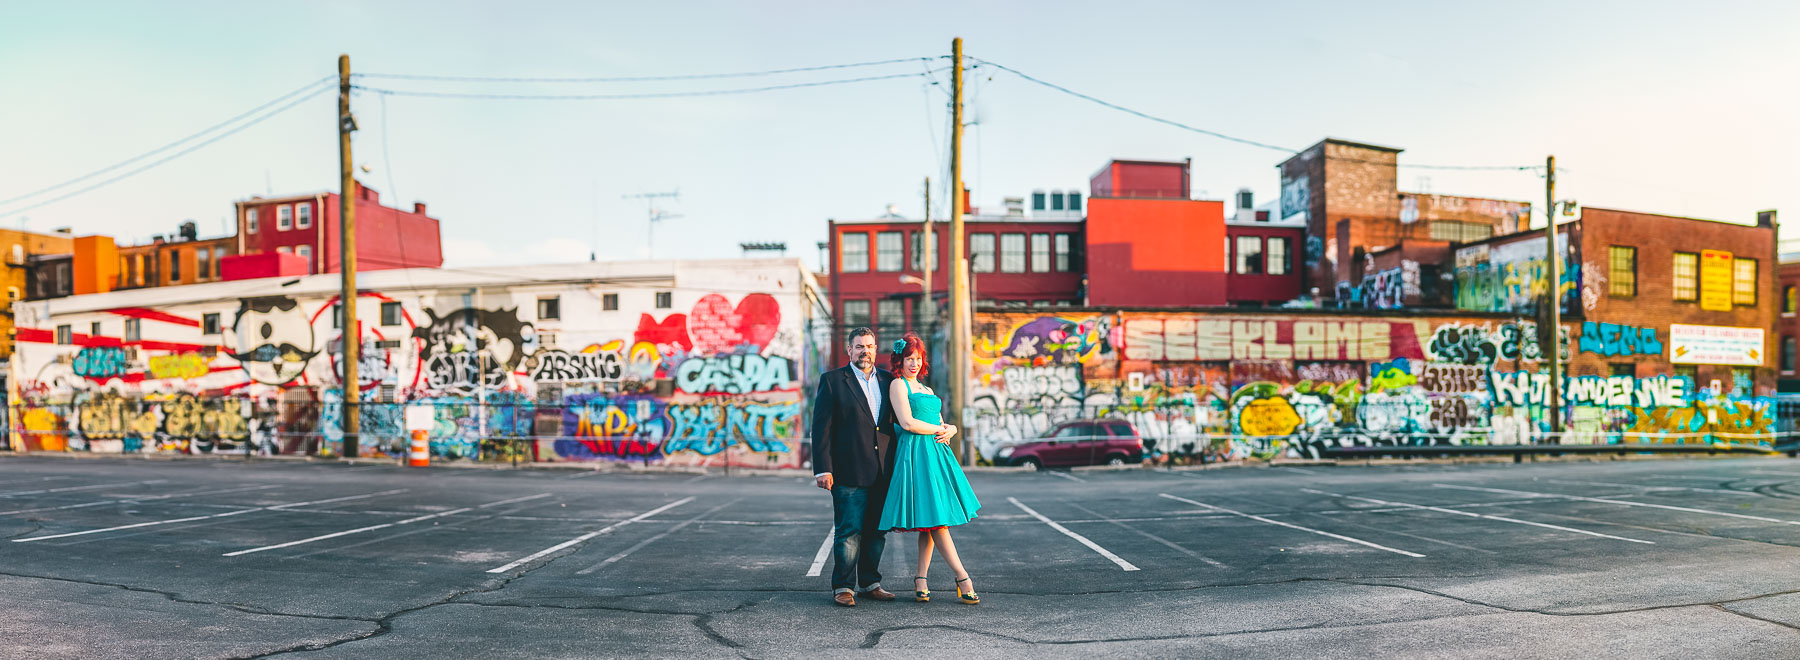 engagement session with murals and graffiti in baltimore 14